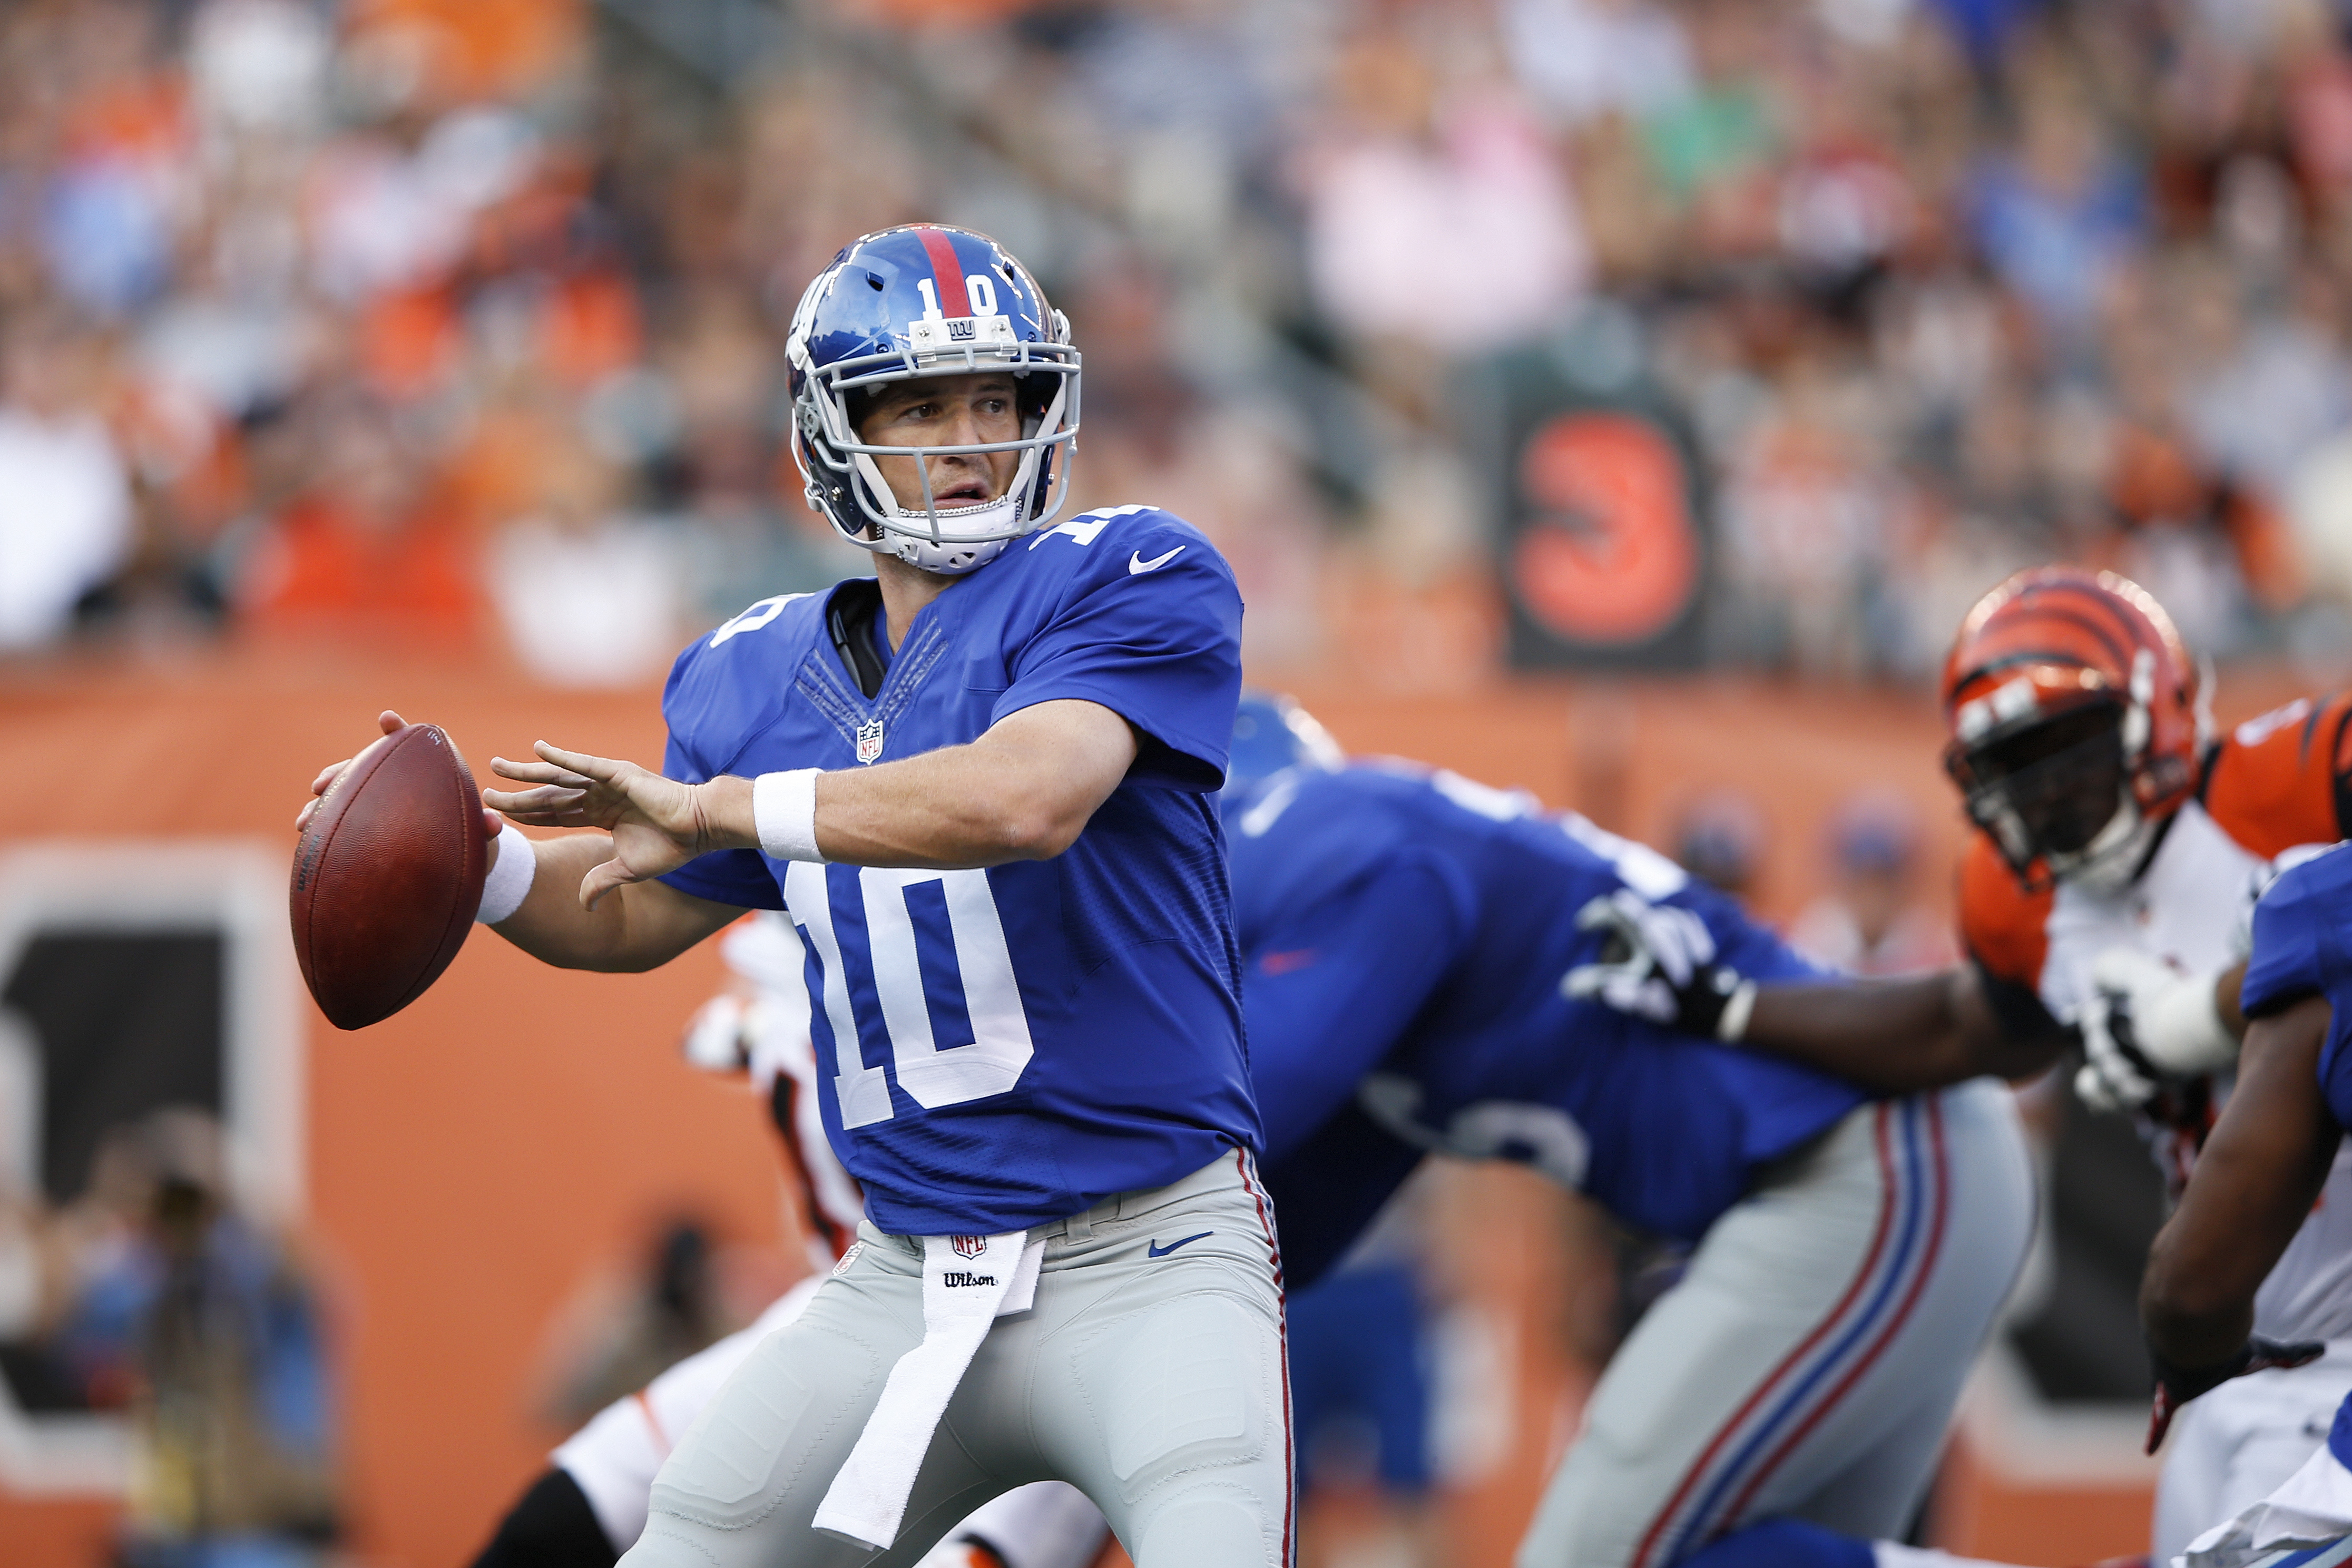 Eli Manning #10 of the New York Giants looks to pass against the Cincinnati Bengals during a preseason game at Paul Brown Stadium on August 14, 2015 in Cincinnati, Ohio.